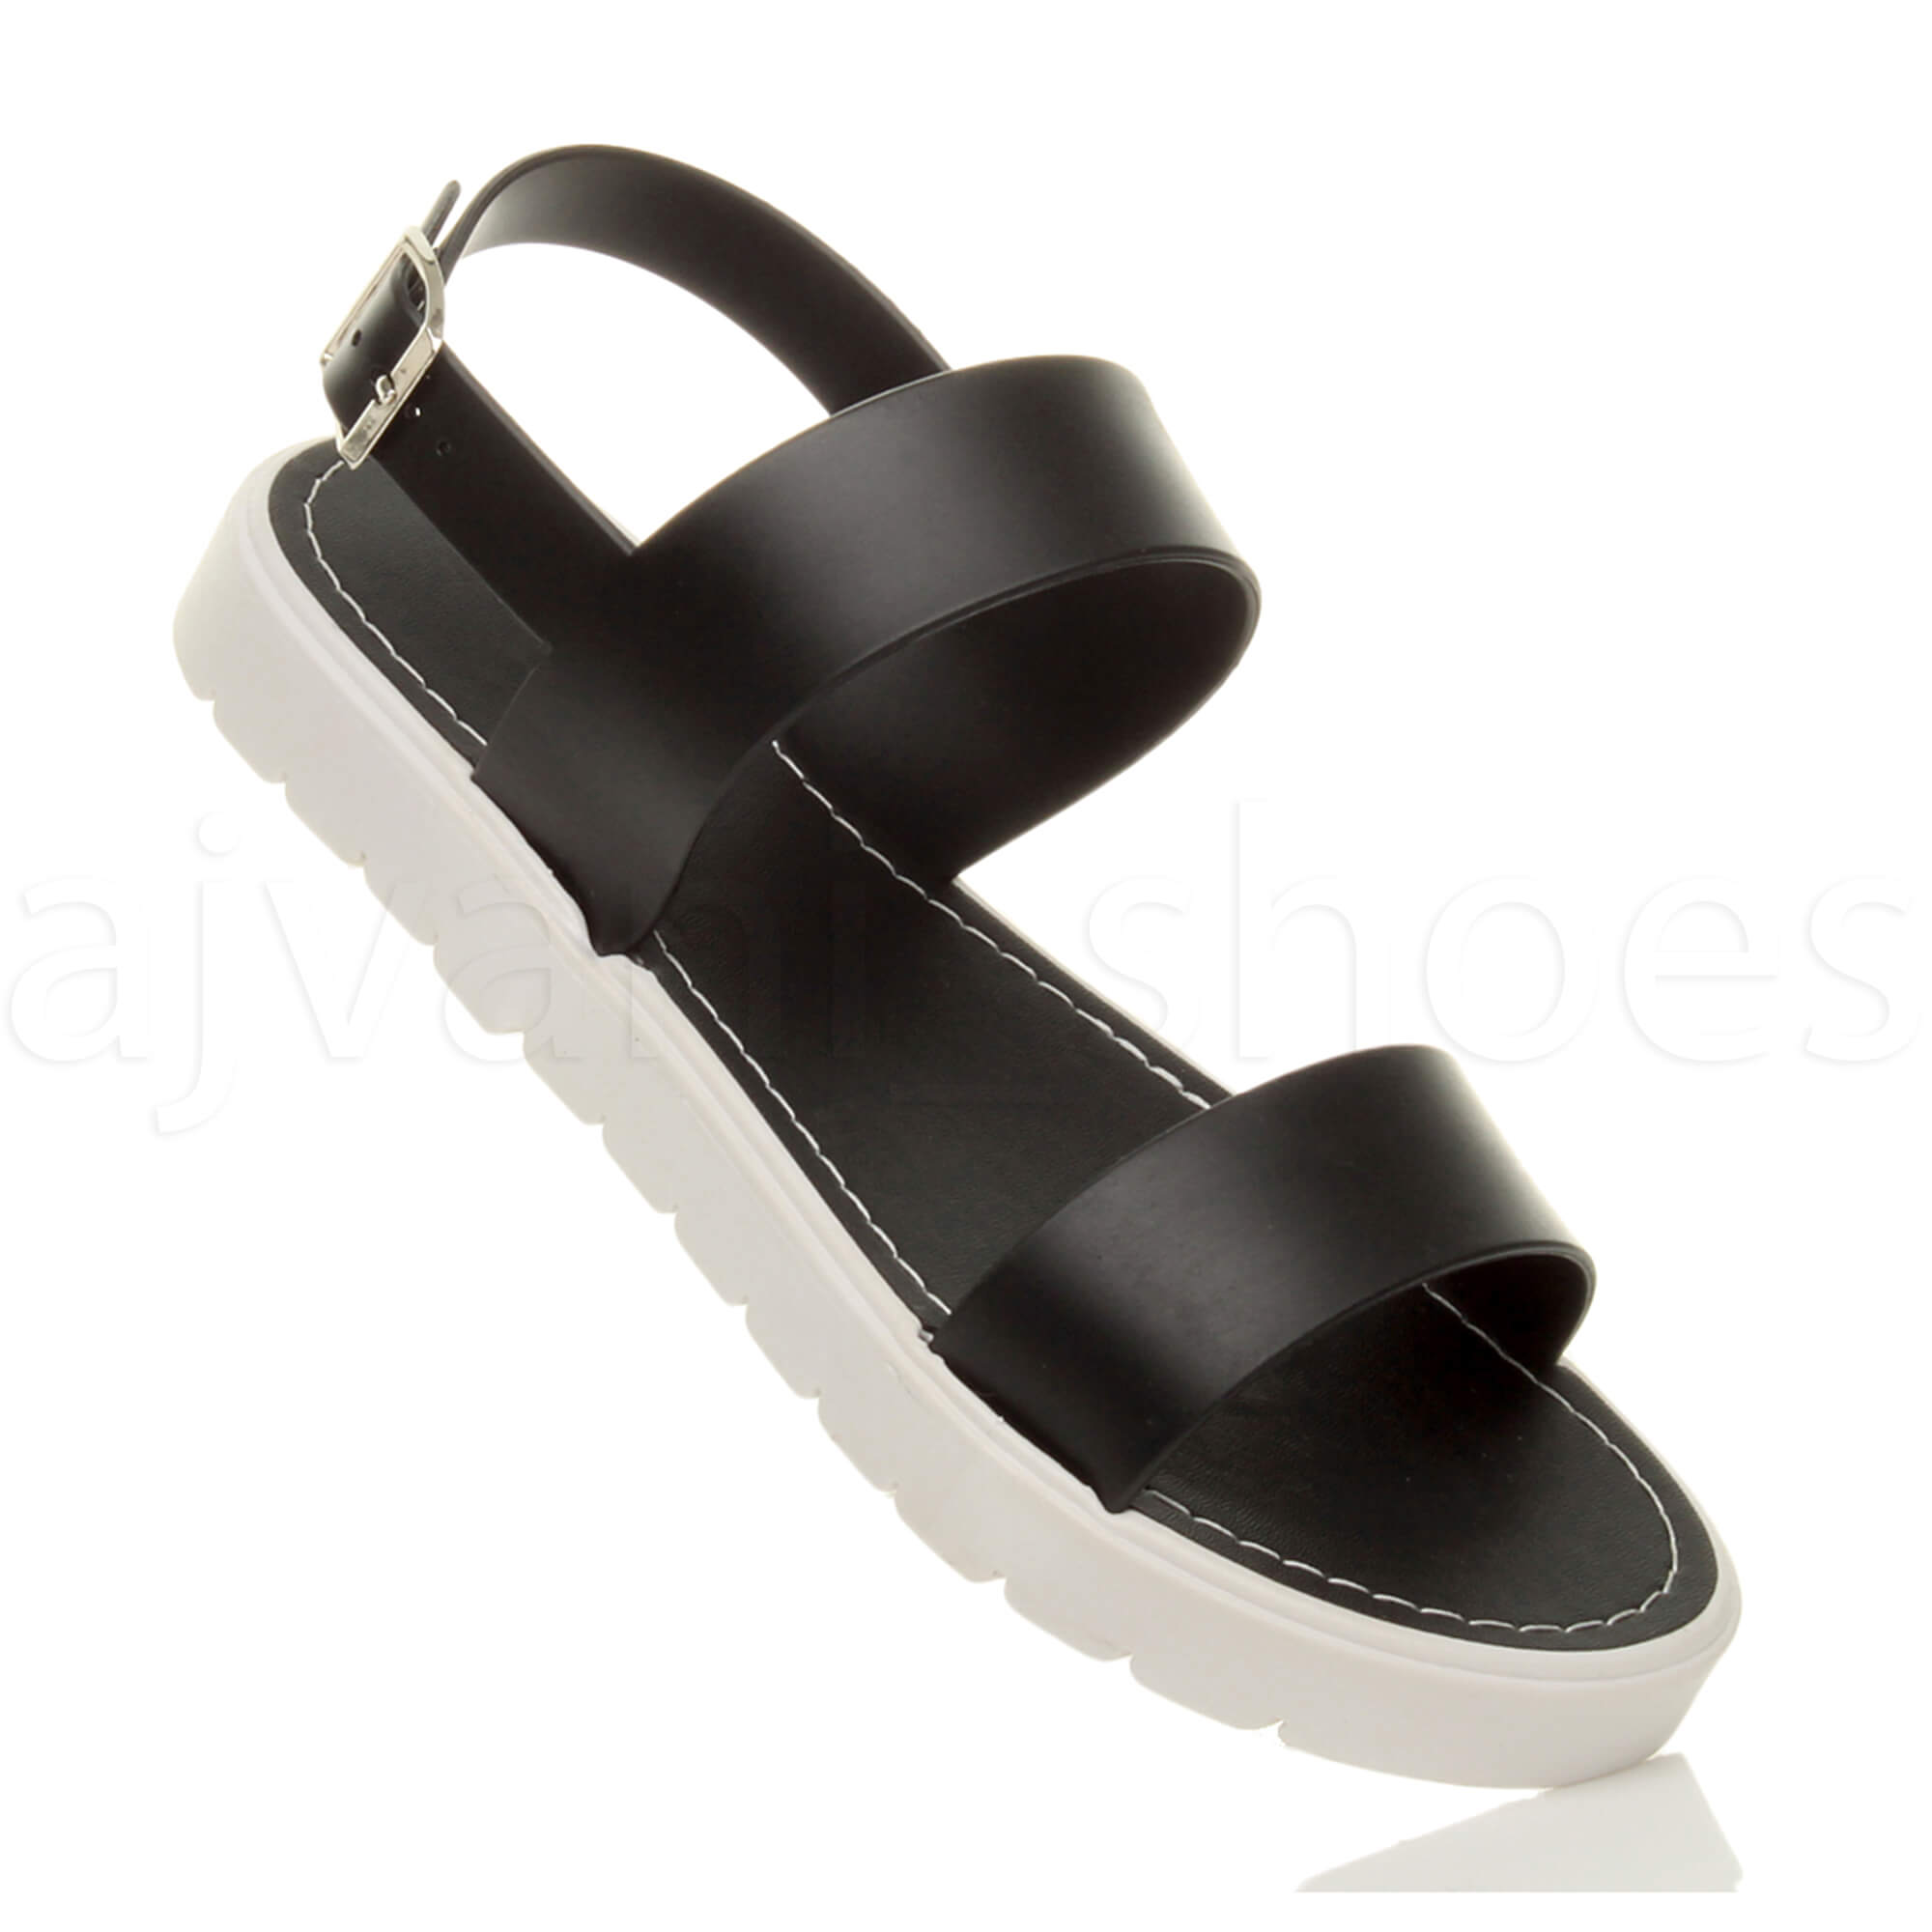 WOMENS-LADIES-FLAT-STRAPPY-BUCKLE-SLINGBACK-CLEATED-RUBBER-SUMMER-SANDALS-SIZE thumbnail 7